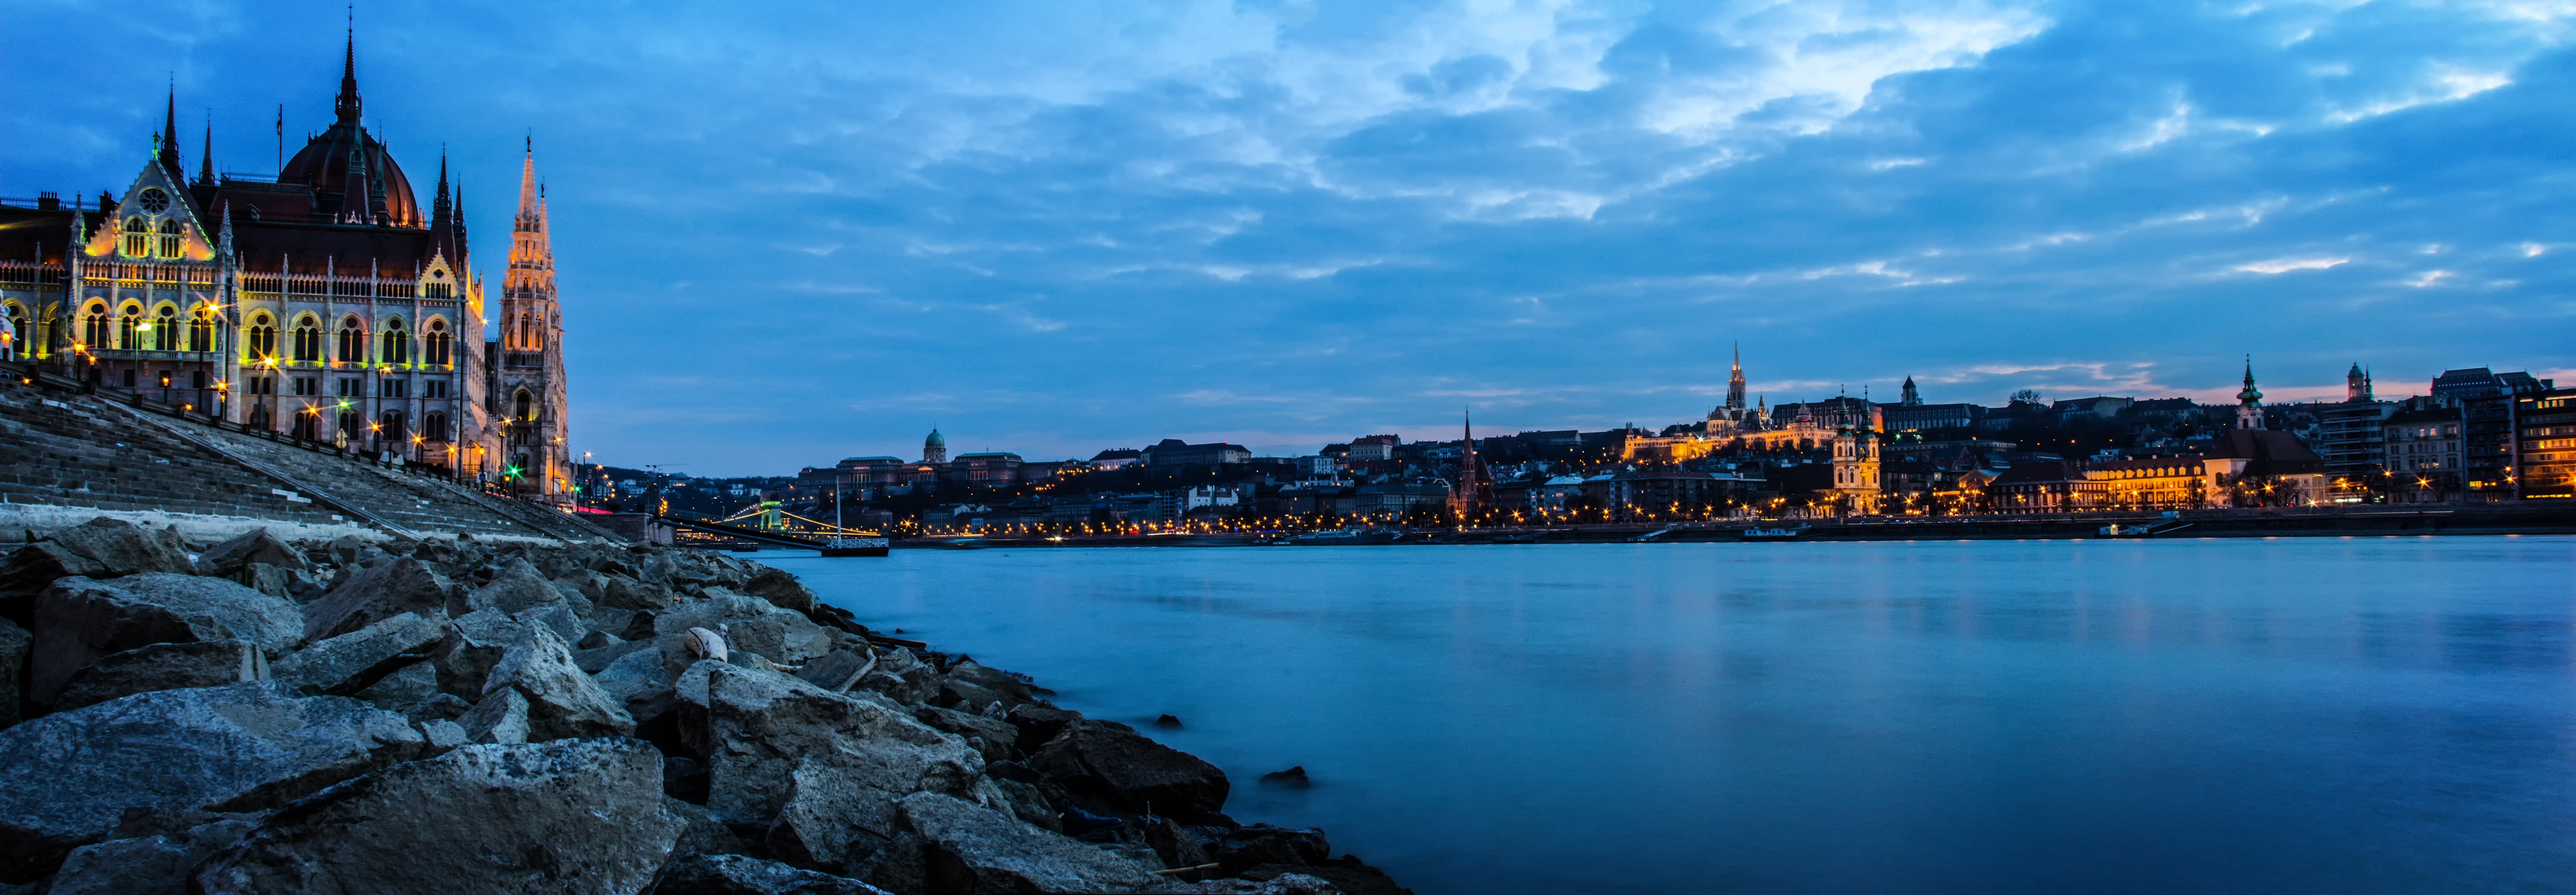 White Castle Beside Body of Water, Budapest, City, Cityscape, Clouds, HQ Photo